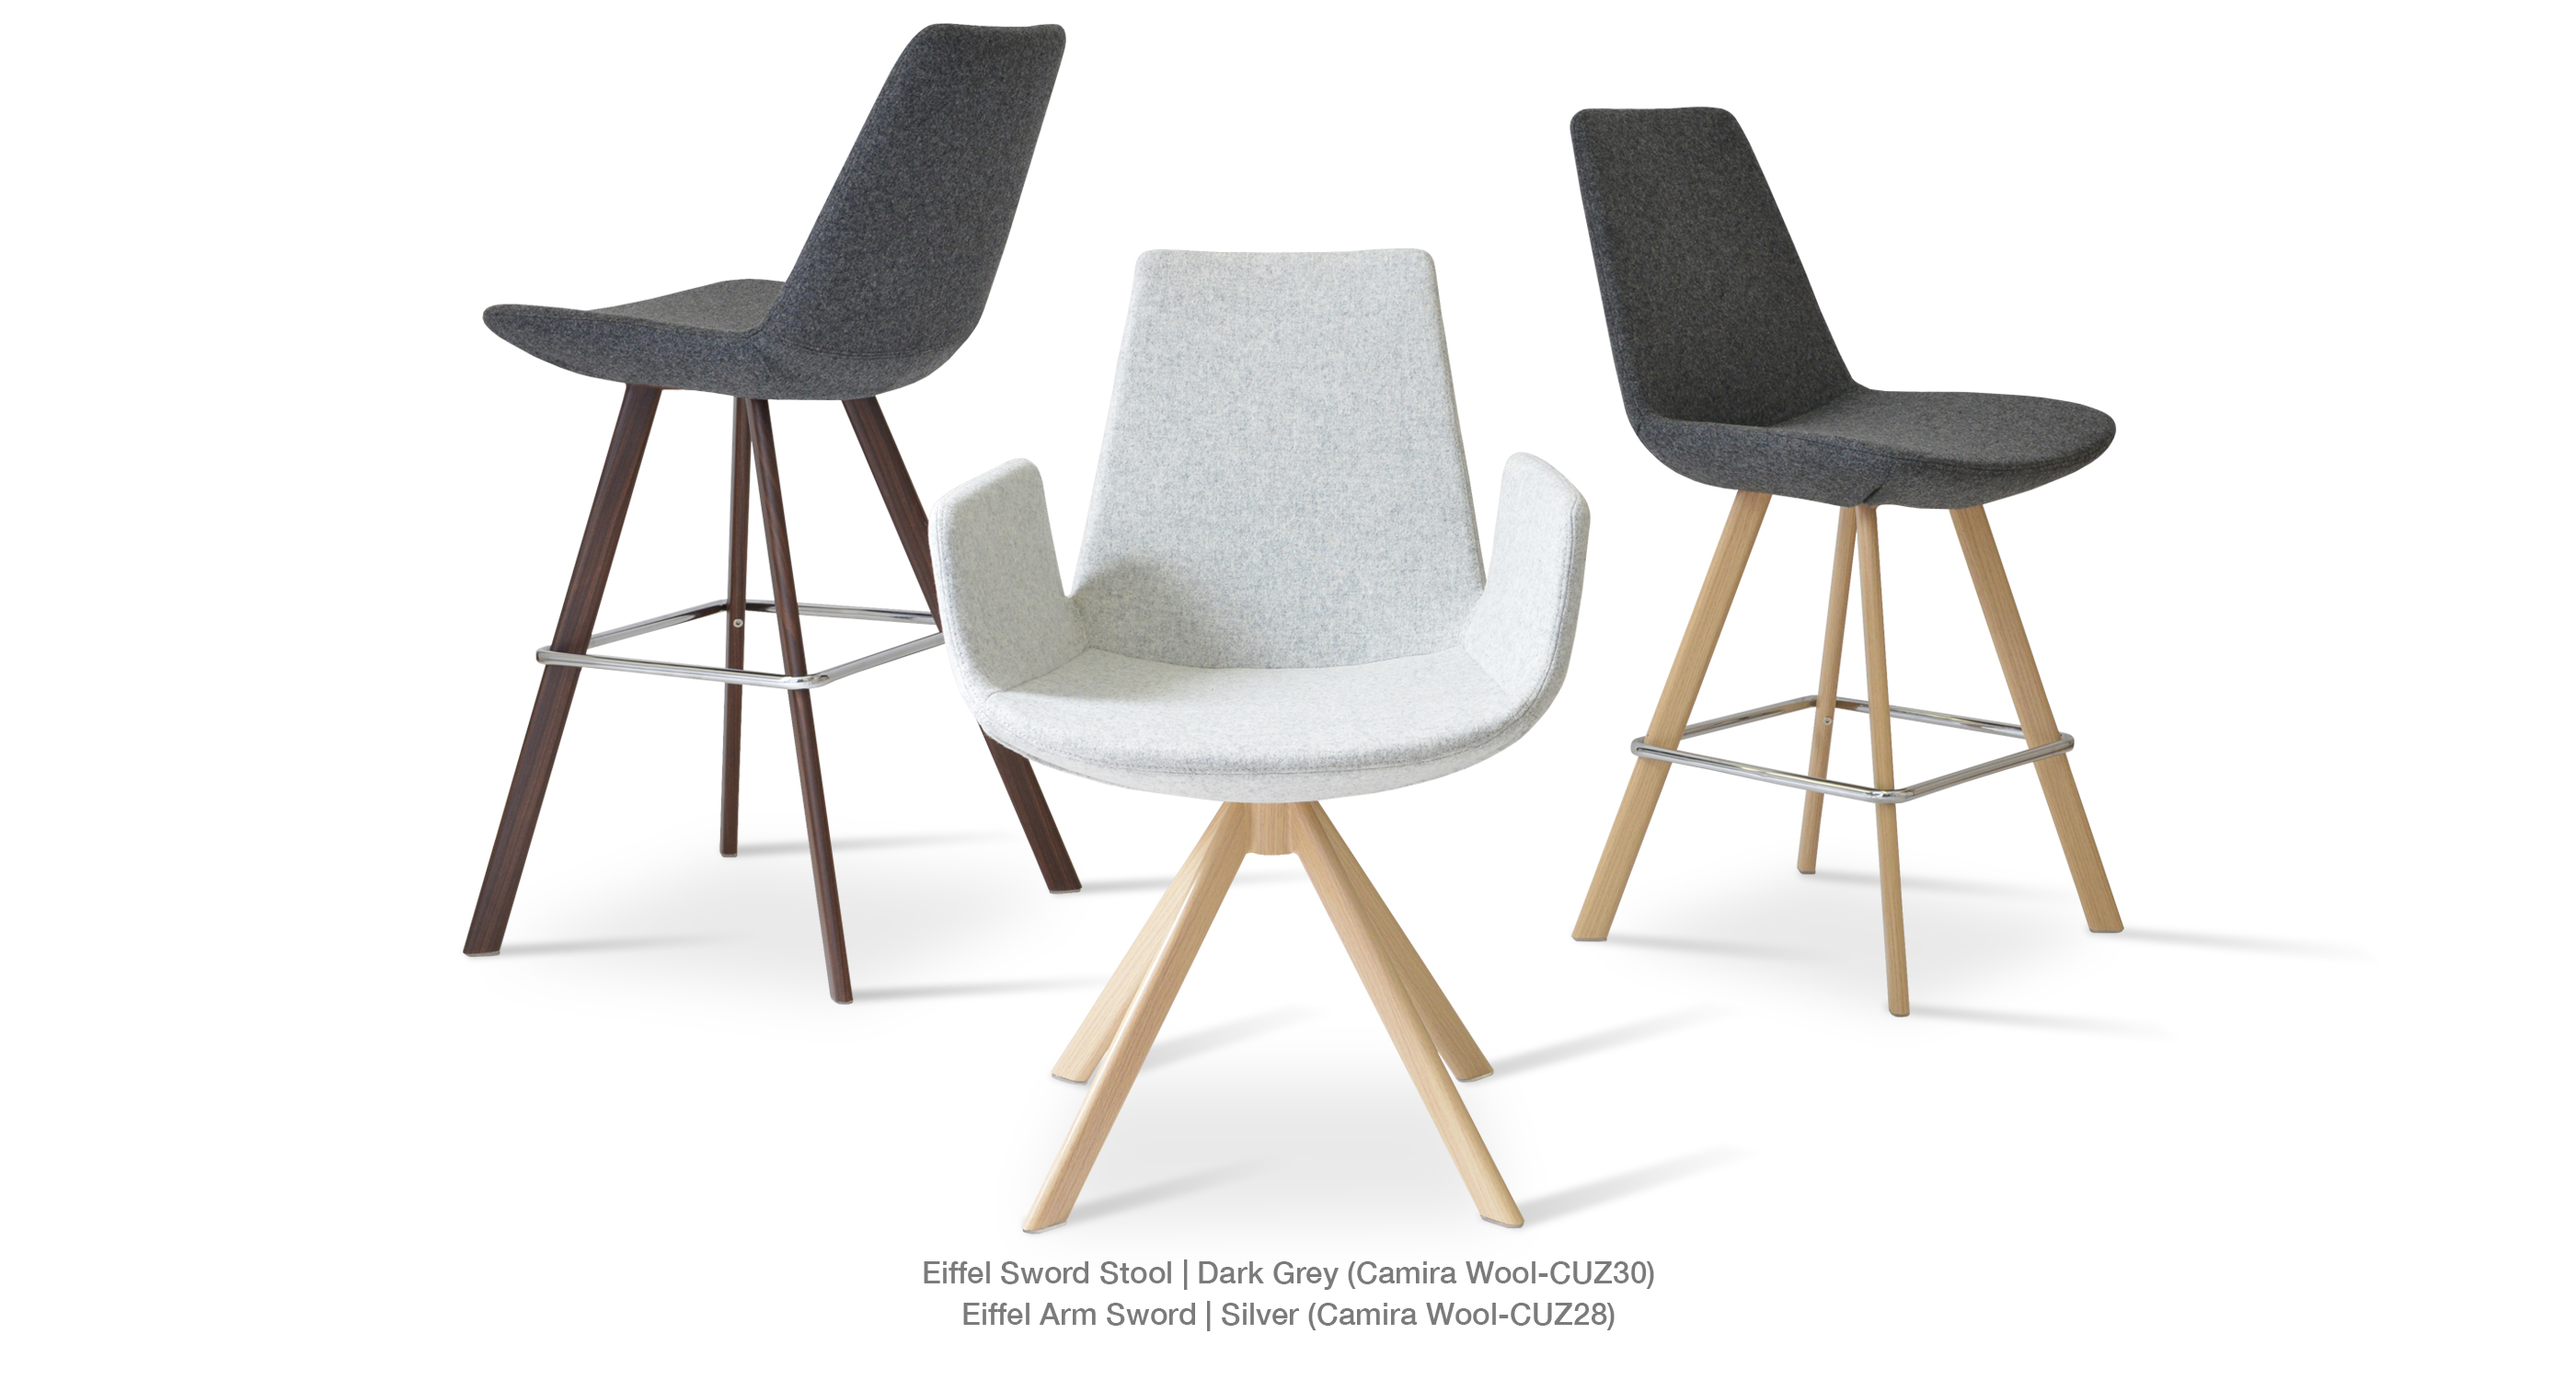 Eiffel Sword Stool And Arm Dining Group